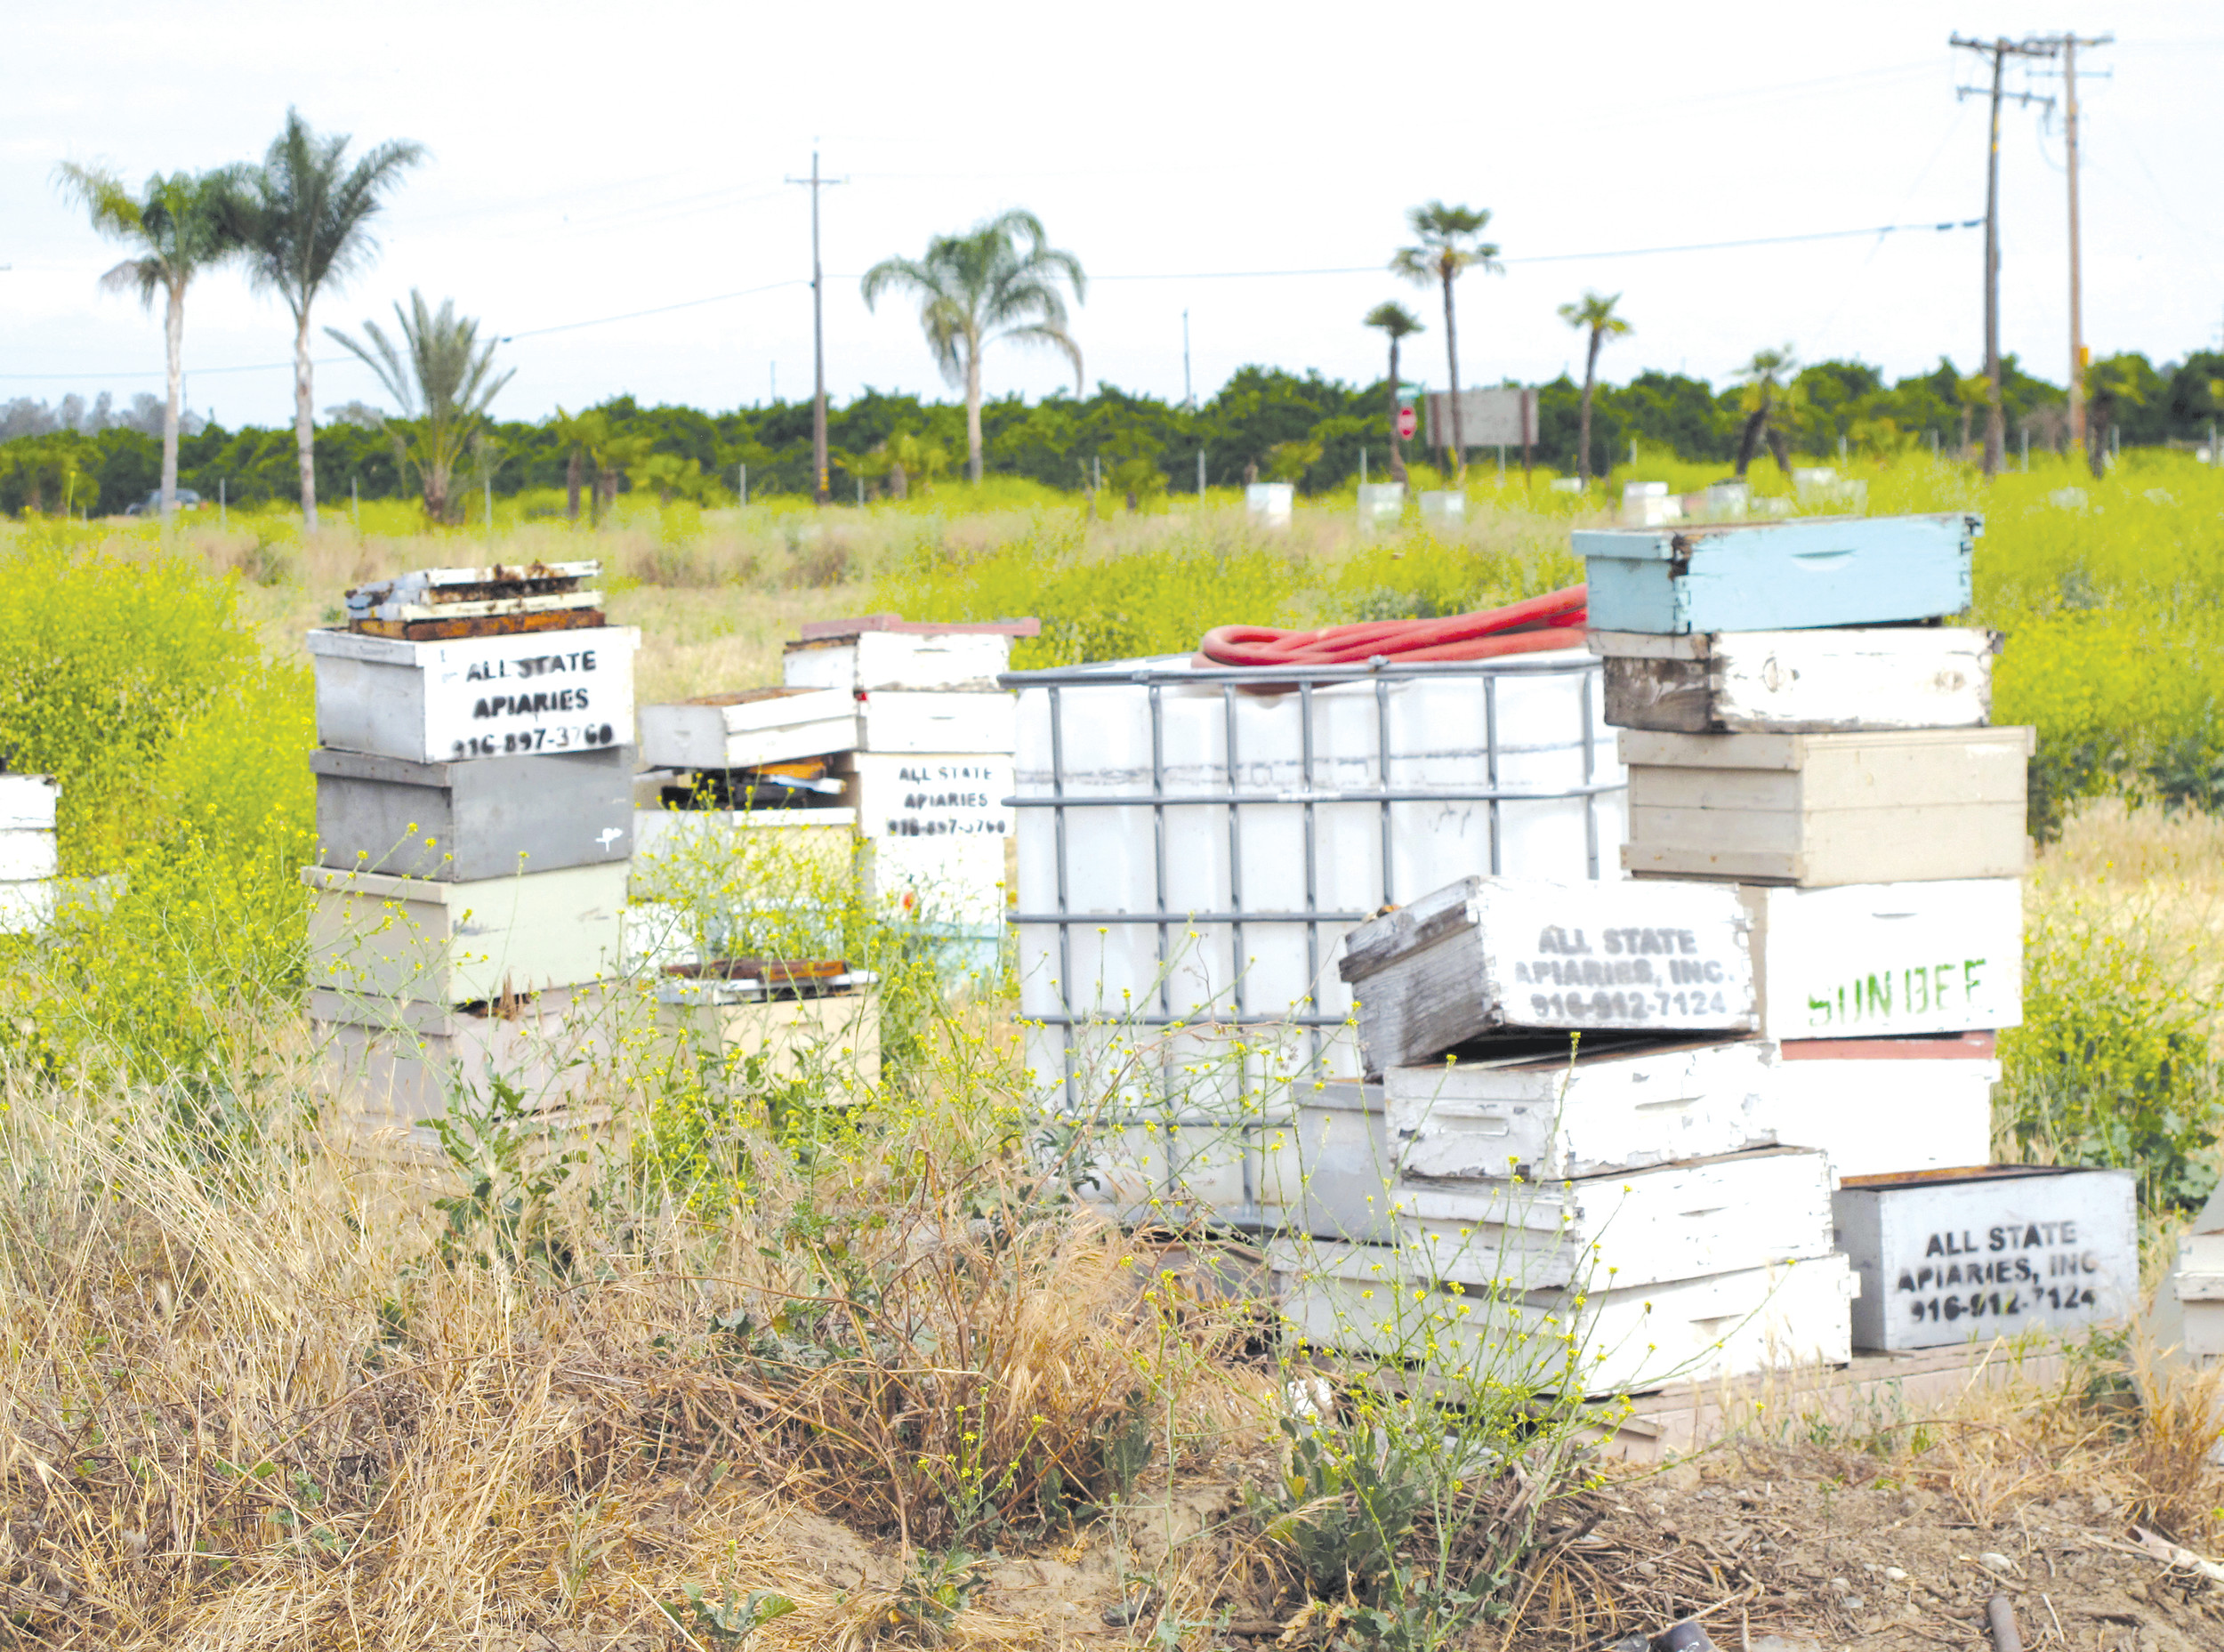 Several of the thousands of recovered beehives stolen in California are shown near Sanger, California. The bee industry is buzzing over the arrest of a man accused of stealing nearly $1 million in hives from California's almond orchards.